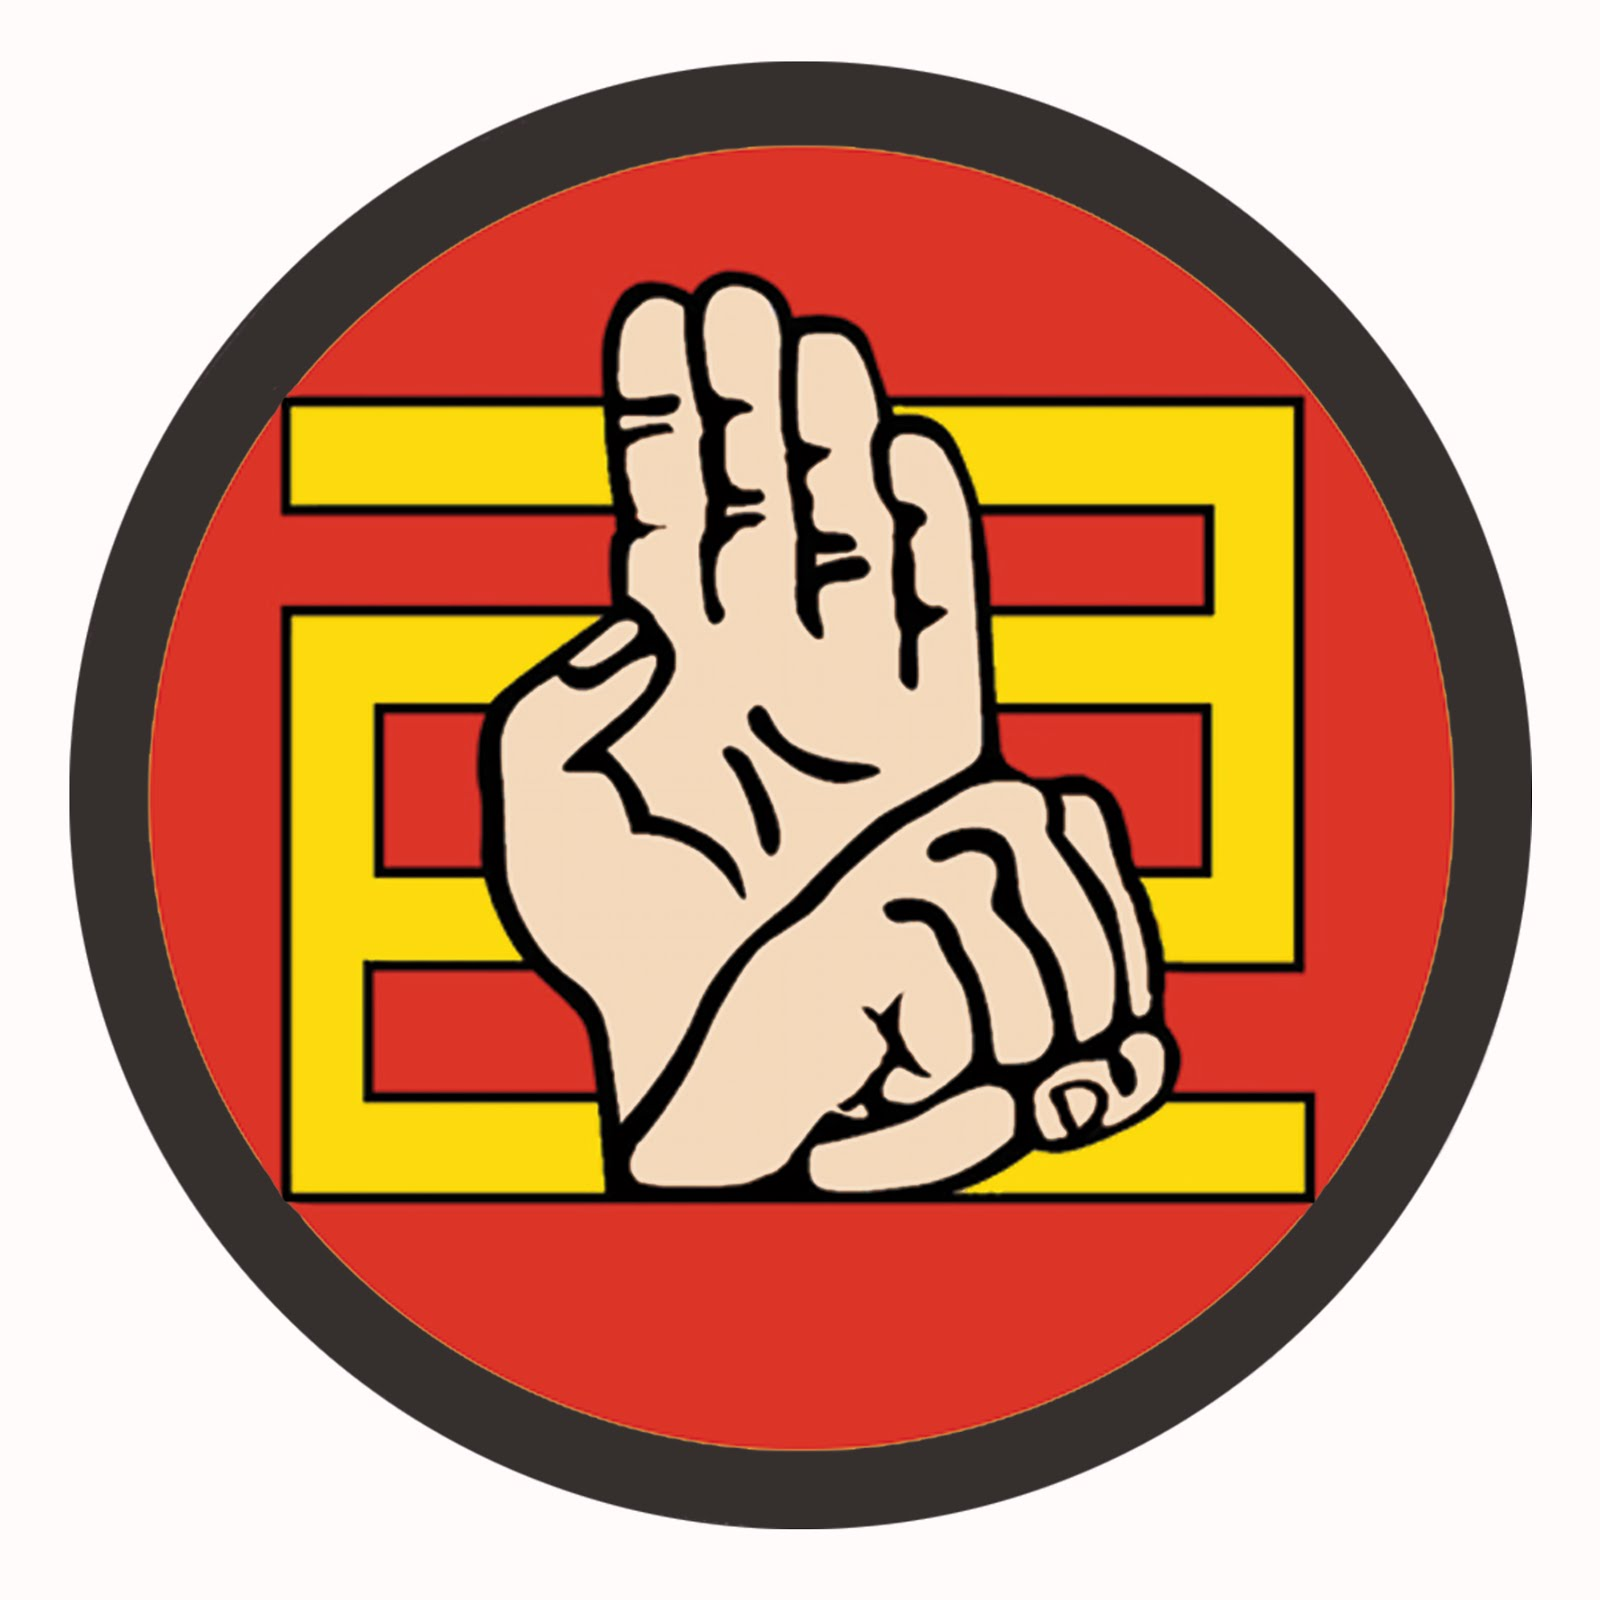 Emblema Seito Karate do Shirenkan  Goju Ryu